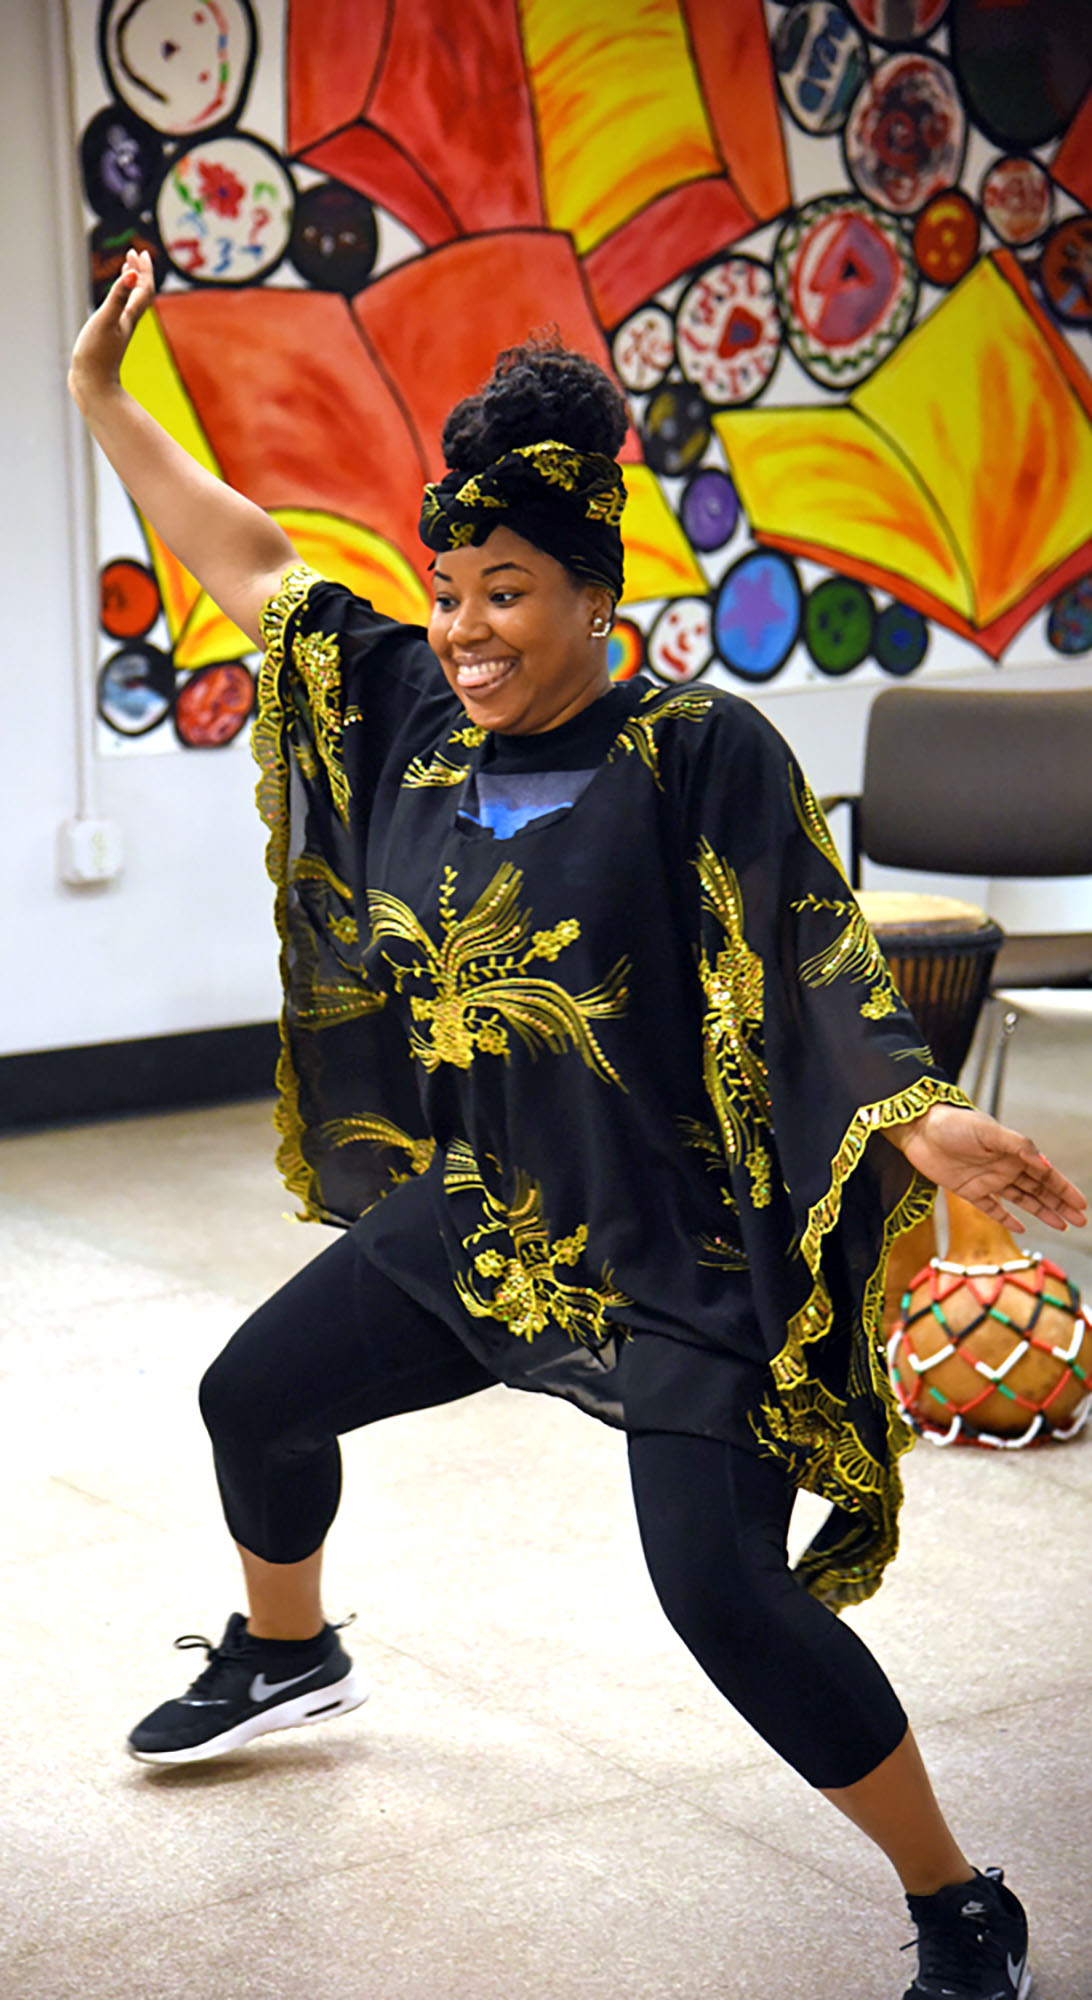 LeBrandi Johnson dancing. (Staff photo by Madison Walls)